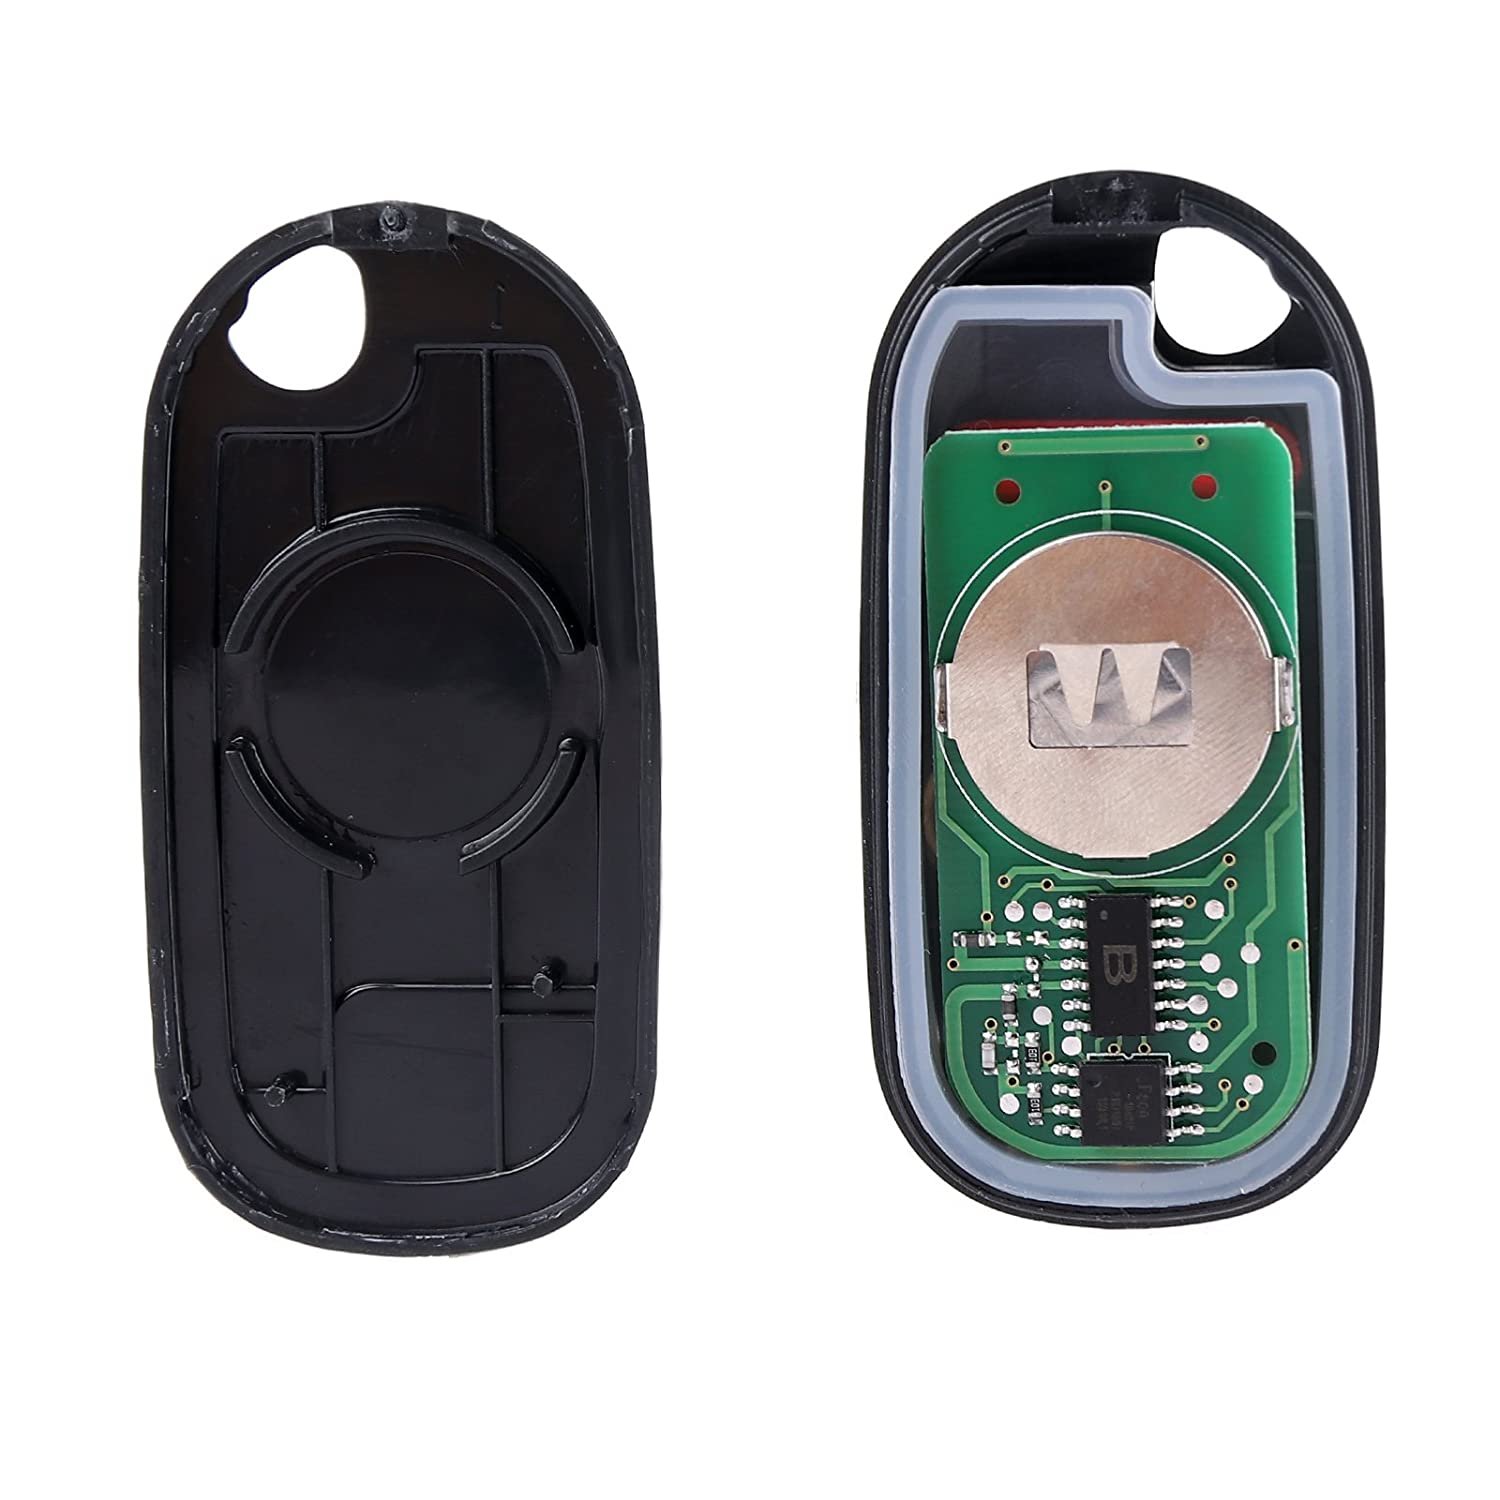 SCITOO 2 Keyless Entry Remote Key Fob Clicker Control 3 Buttons Replacement fit Honda Civic Pilot NHVWB1U523